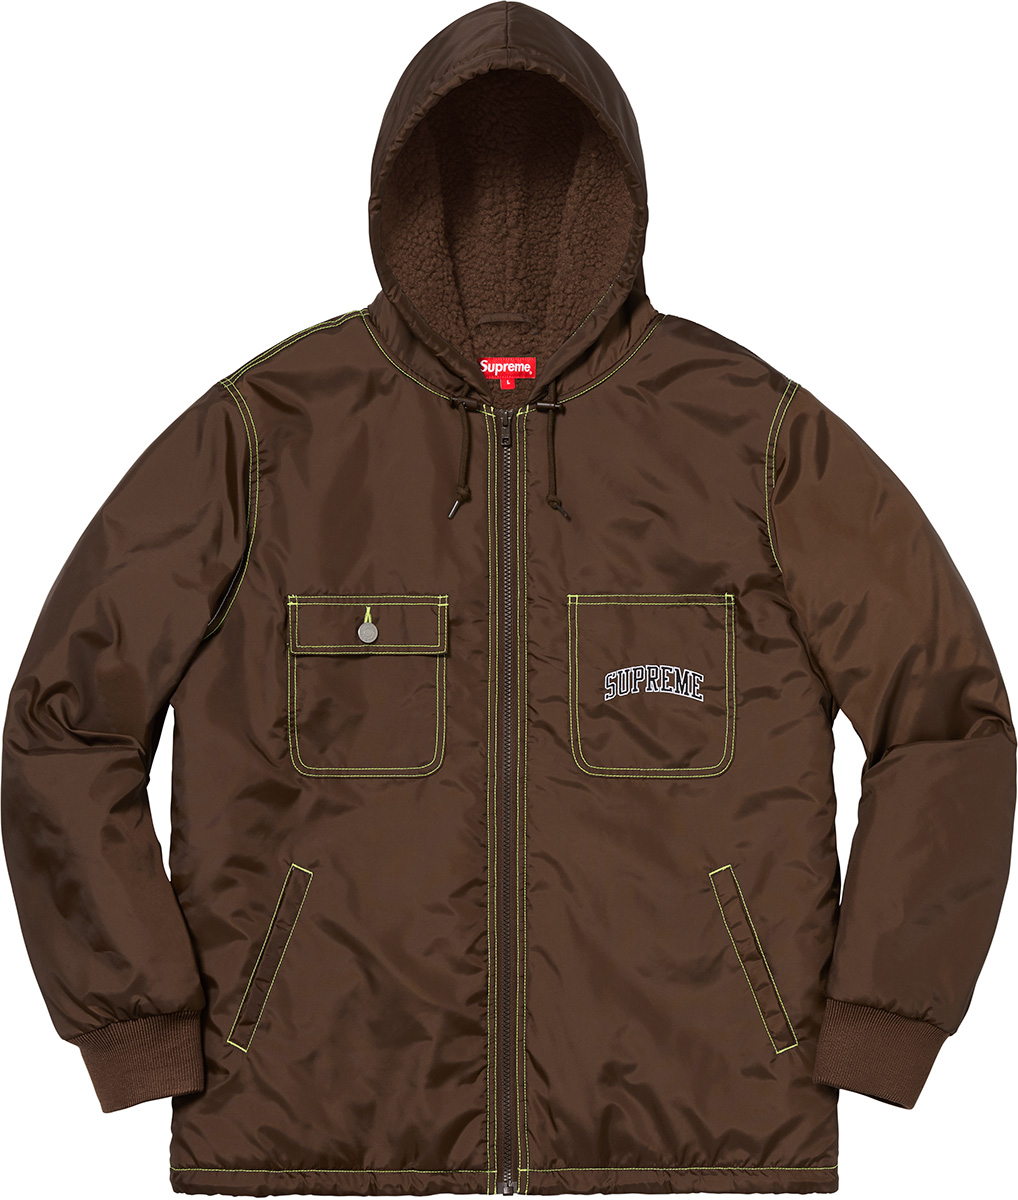 supreme-18aw-fall-winter-sherpa-lined-nylon-zip-up-jacket